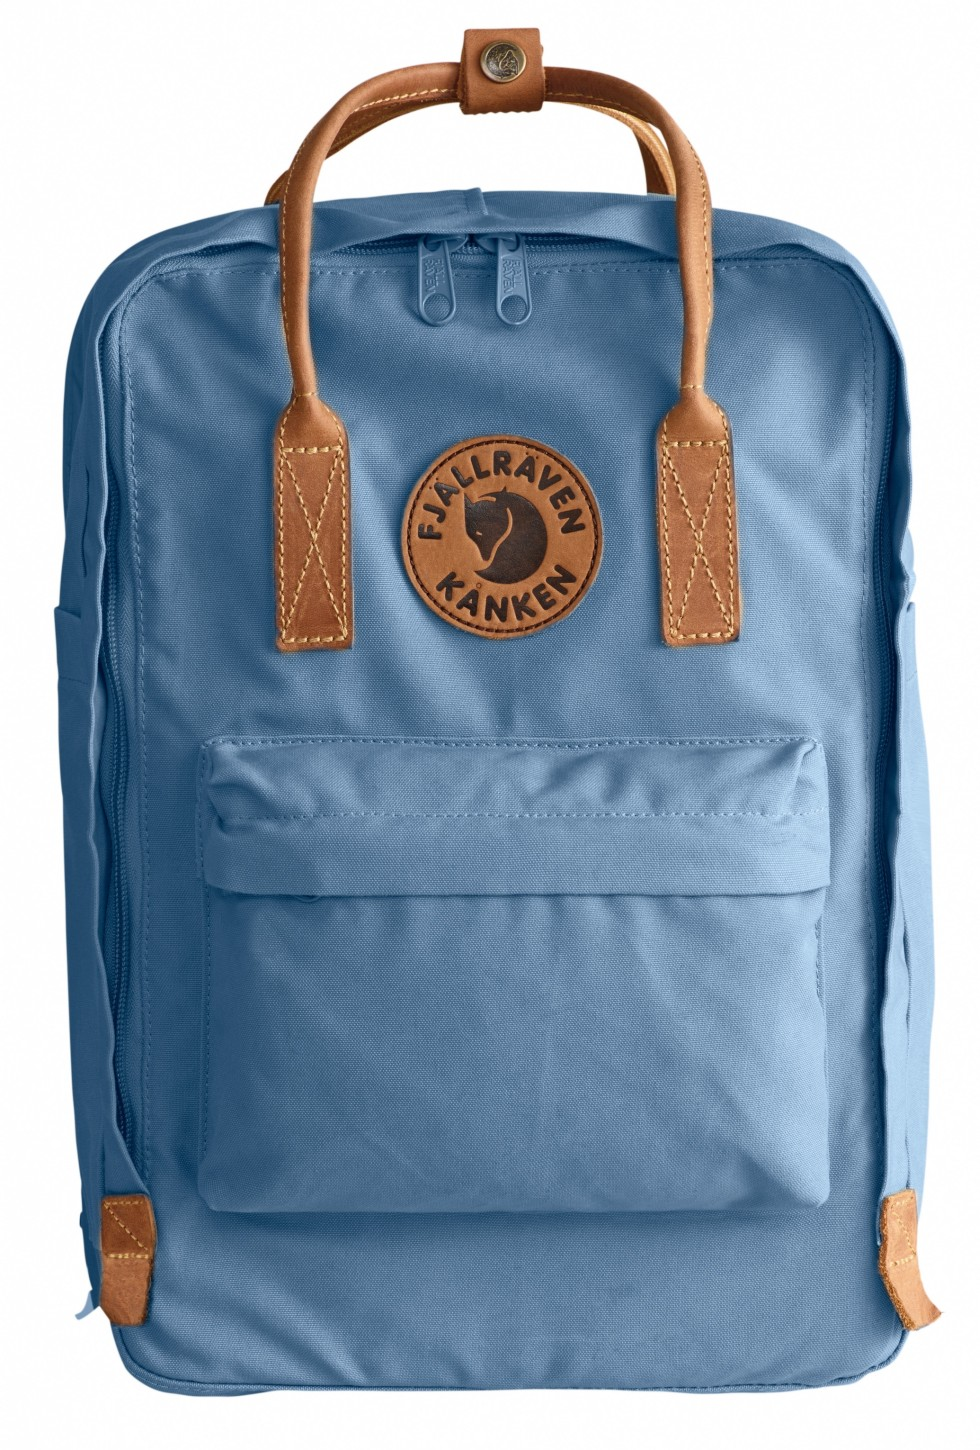 94657cf7f79 FjallRaven Kanken No. 2 Laptop 15 Blue Ridge - us